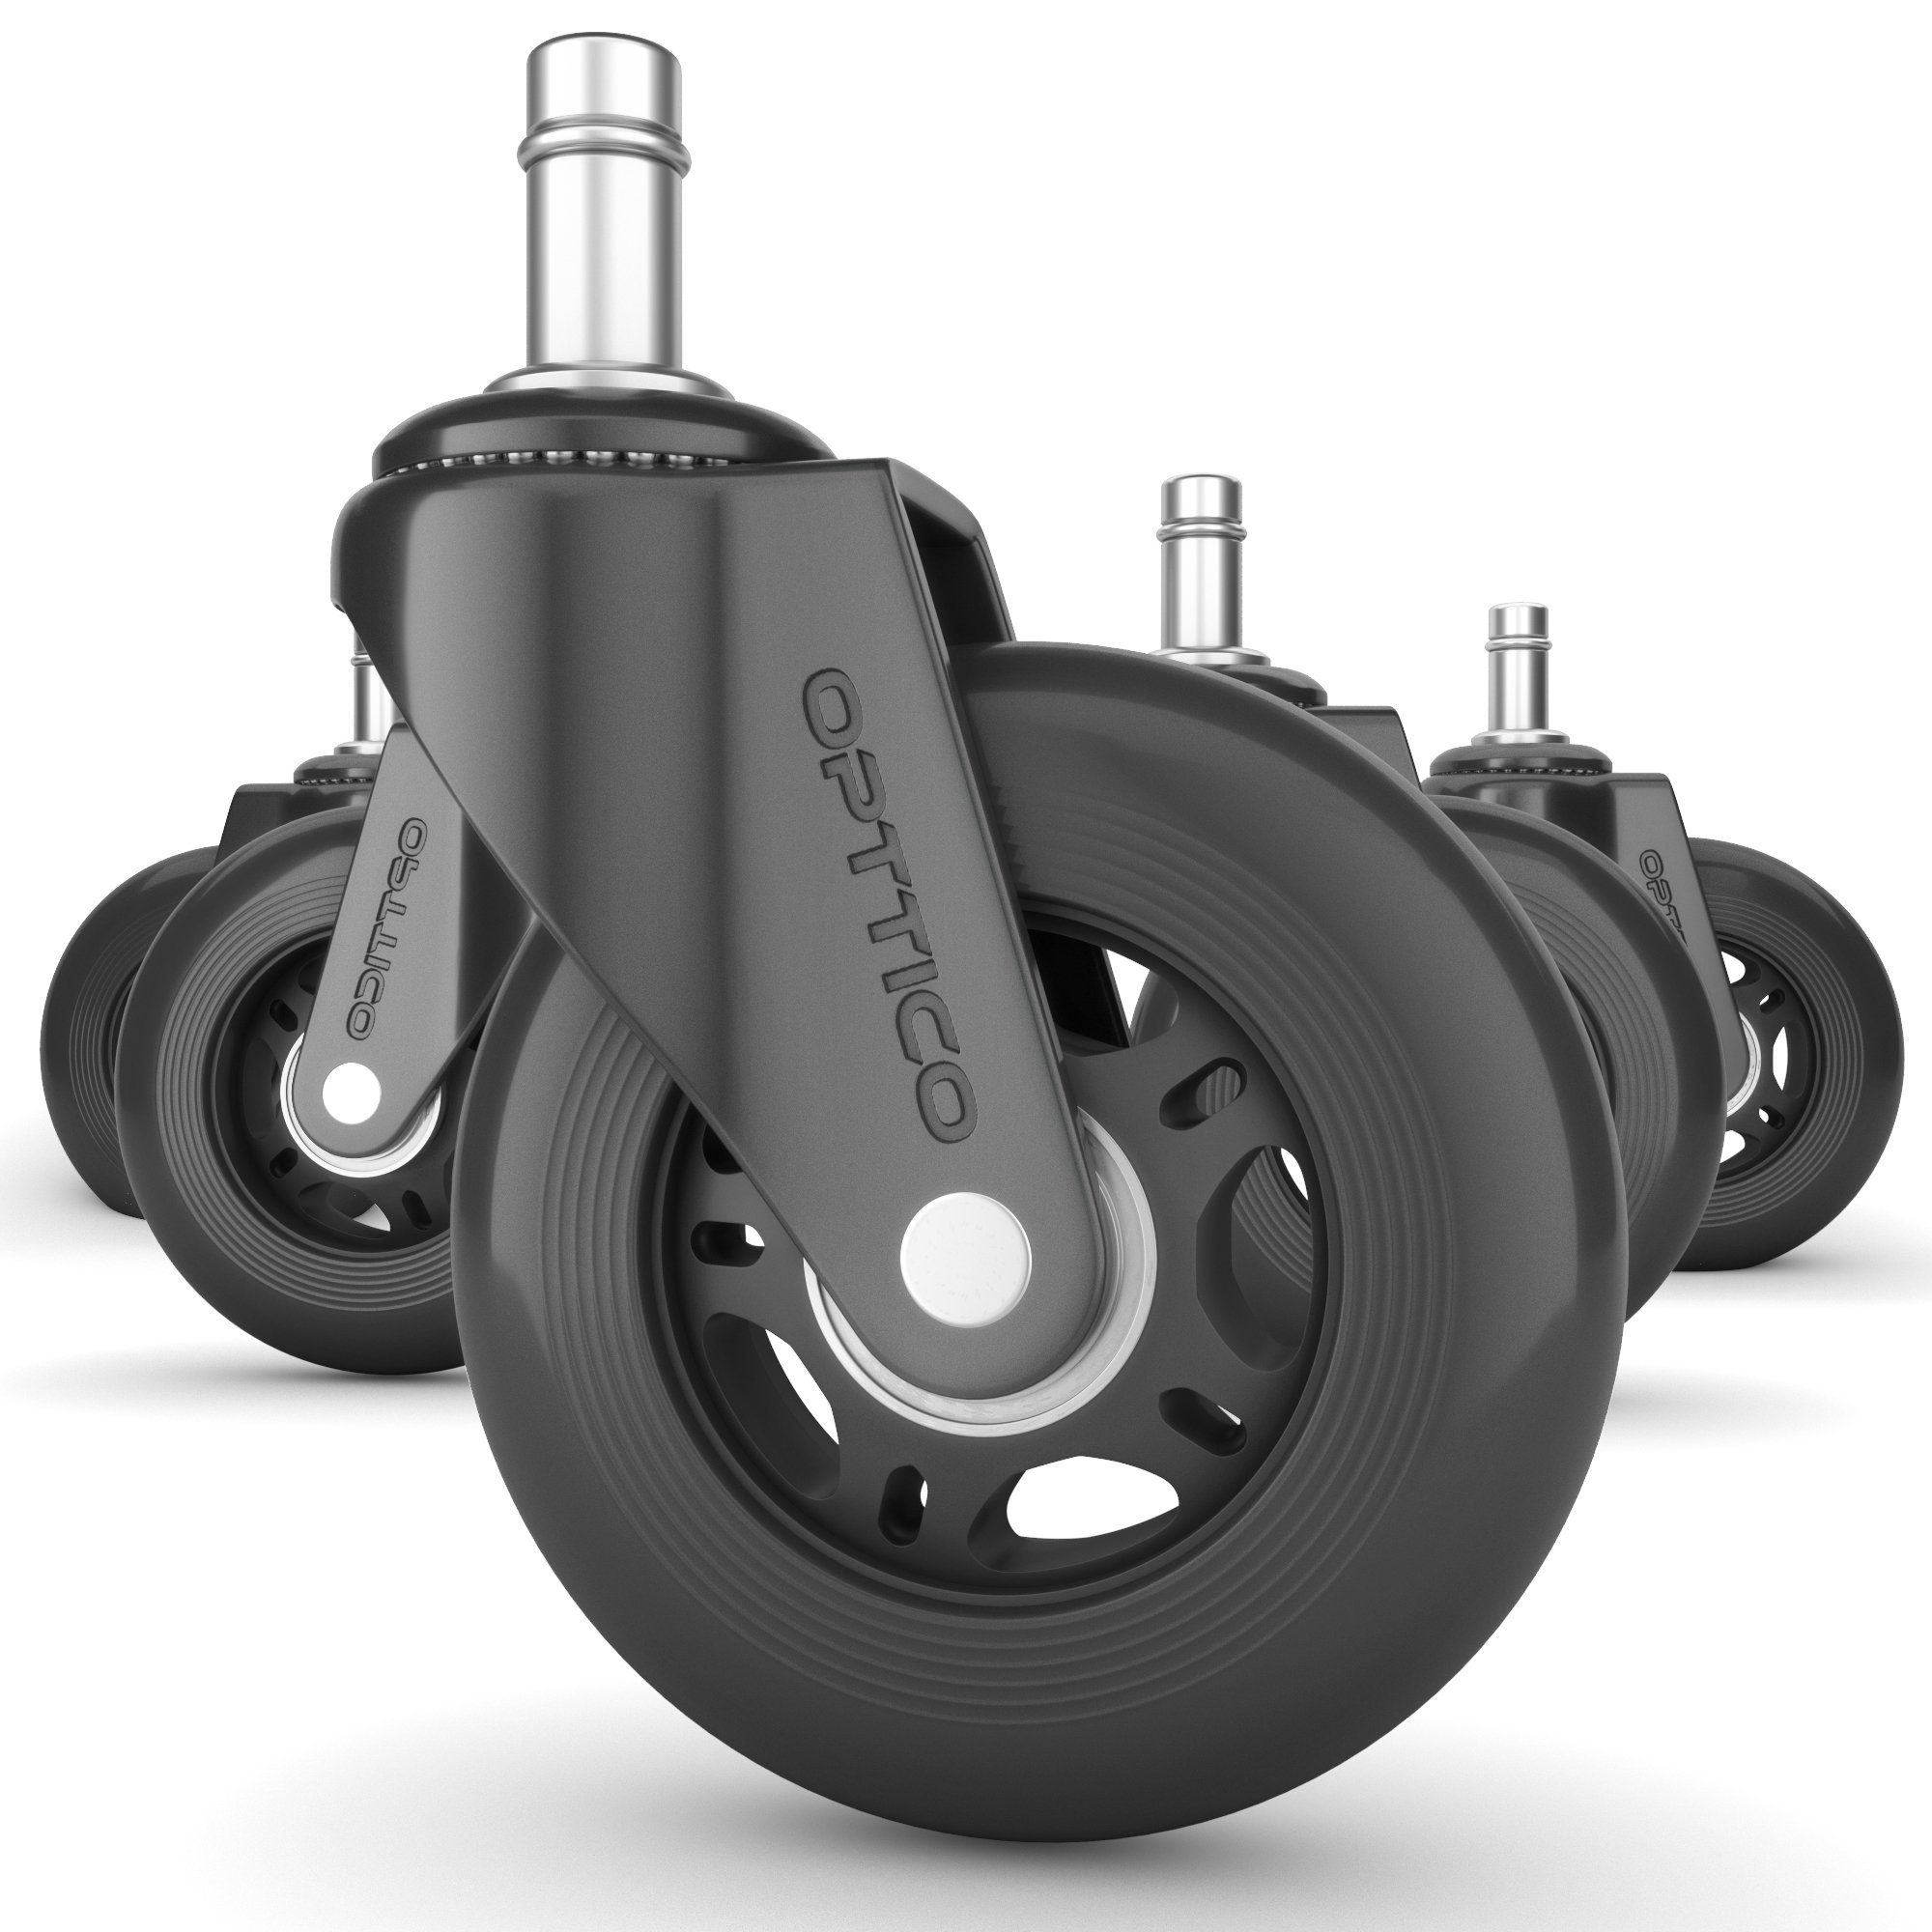 OPTTICO Office Chair Caster Wheels Replacement - Black 3 Inch Desk Chair Wheels - No Chair MAT for Hardwood Floor Needed - Rollerblade Style Heavy Duty Computer Chair Casters with Soft Rubber Wheels. by OPTTICO